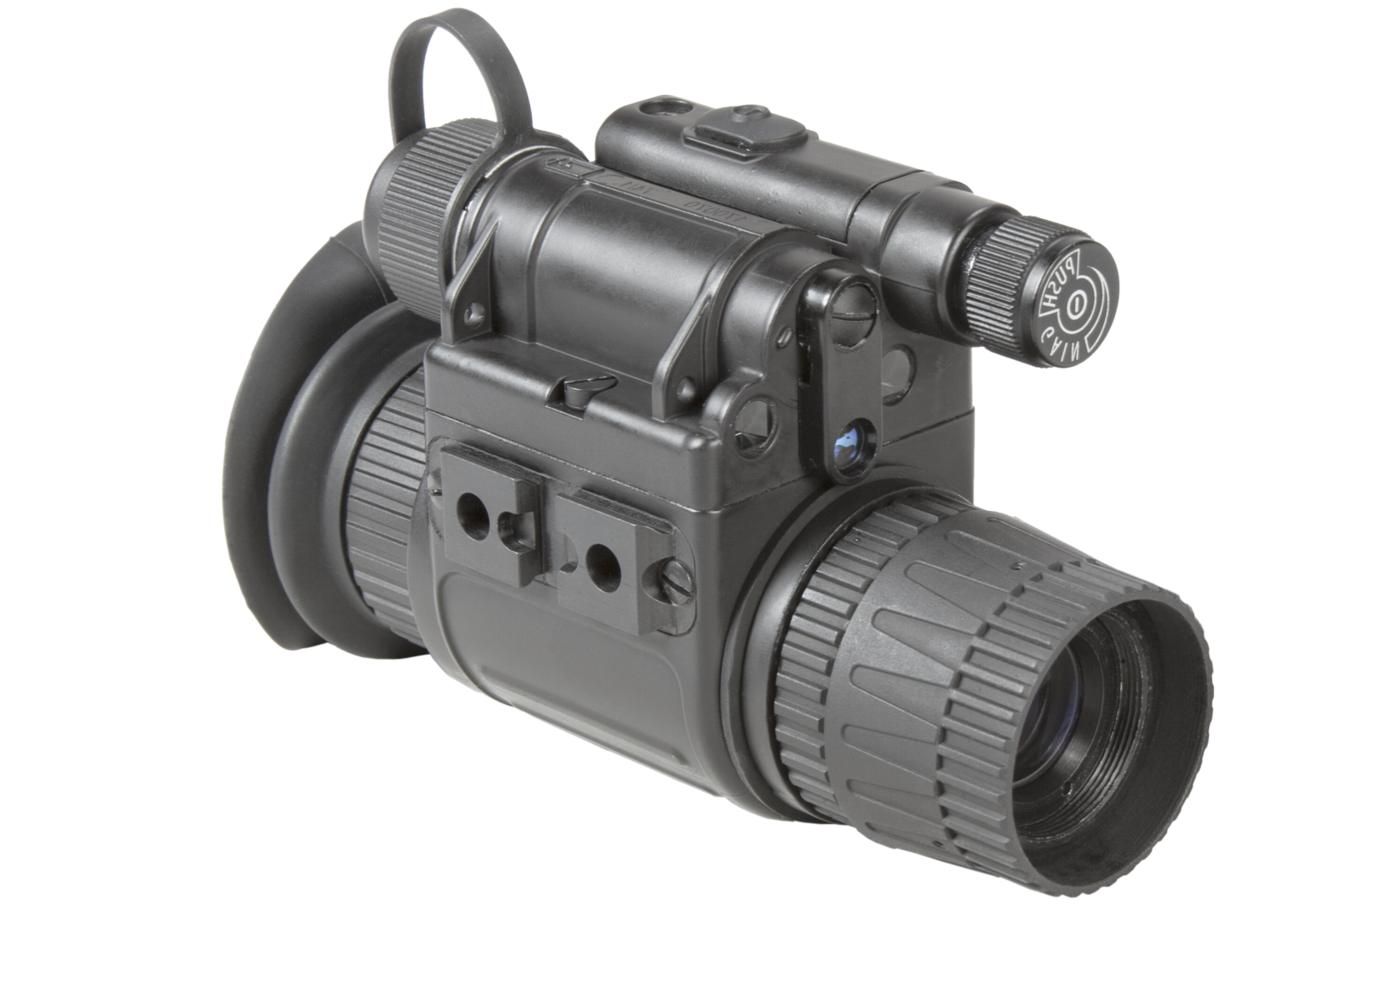 ARMASIGHT MNVD-51 3AG Multi-Purpose Night Vision Monocular G